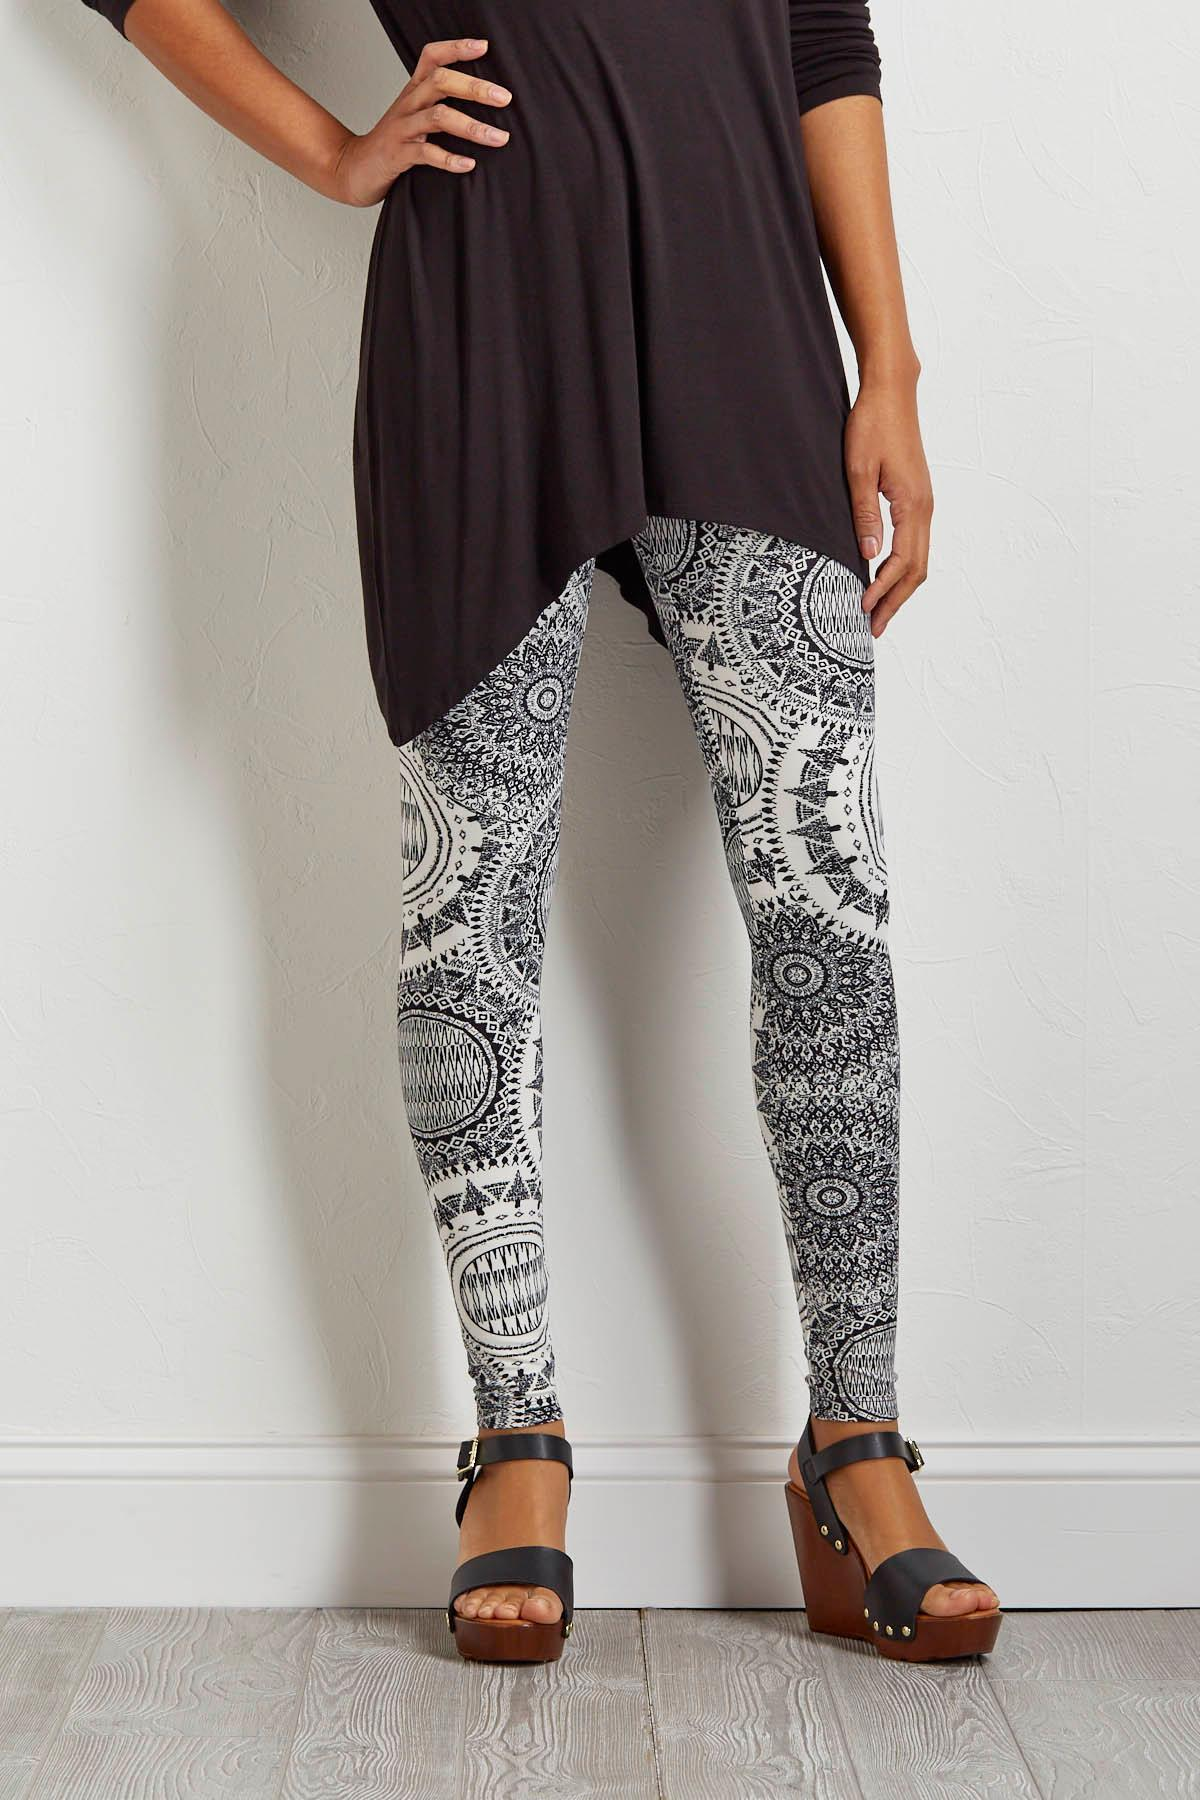 Feather Soft Black And White Leggings